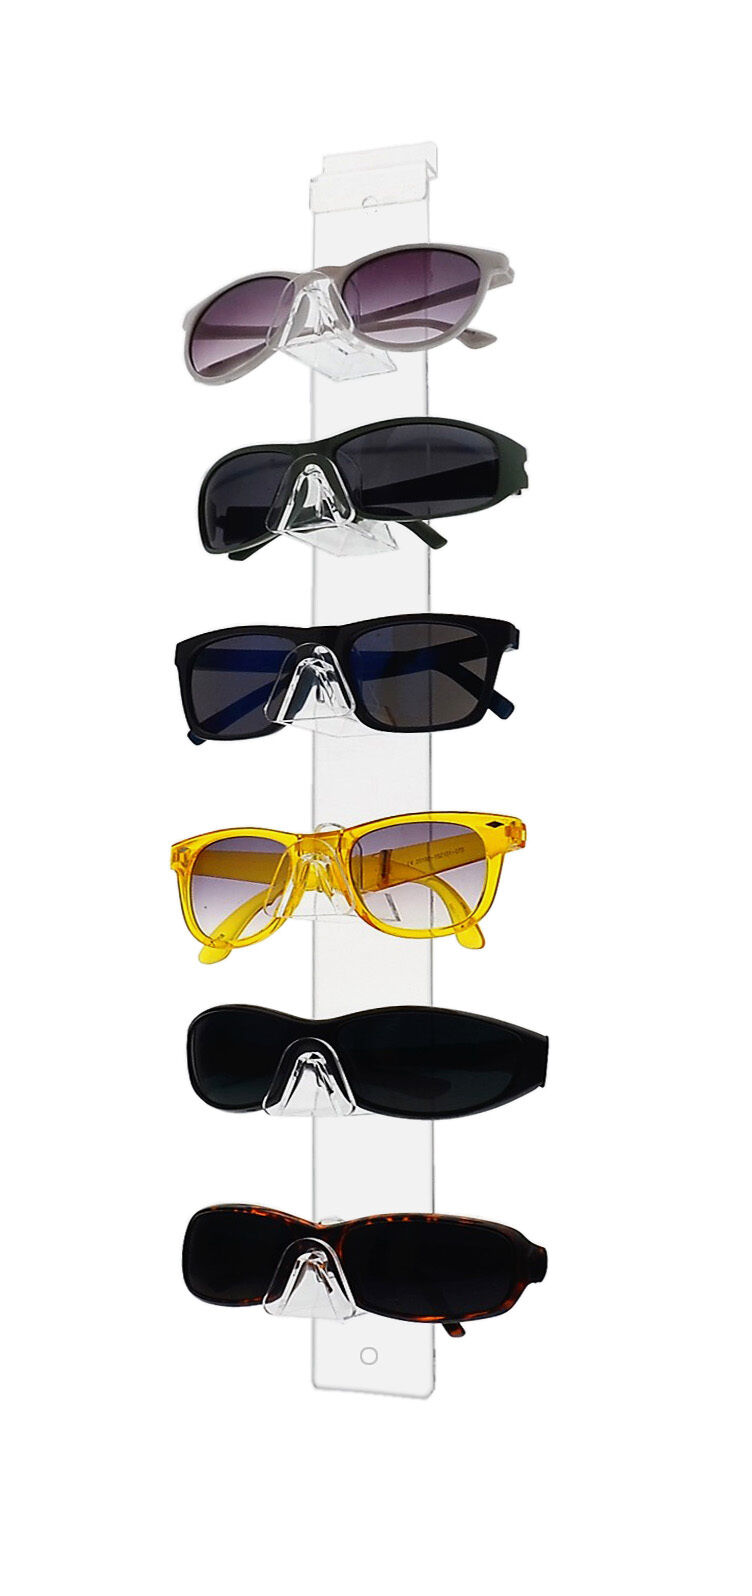 Lot of 12 Clear 6 Tier Acrylic SUNGLASSES EYEGLASSES Display Stand Slatwall